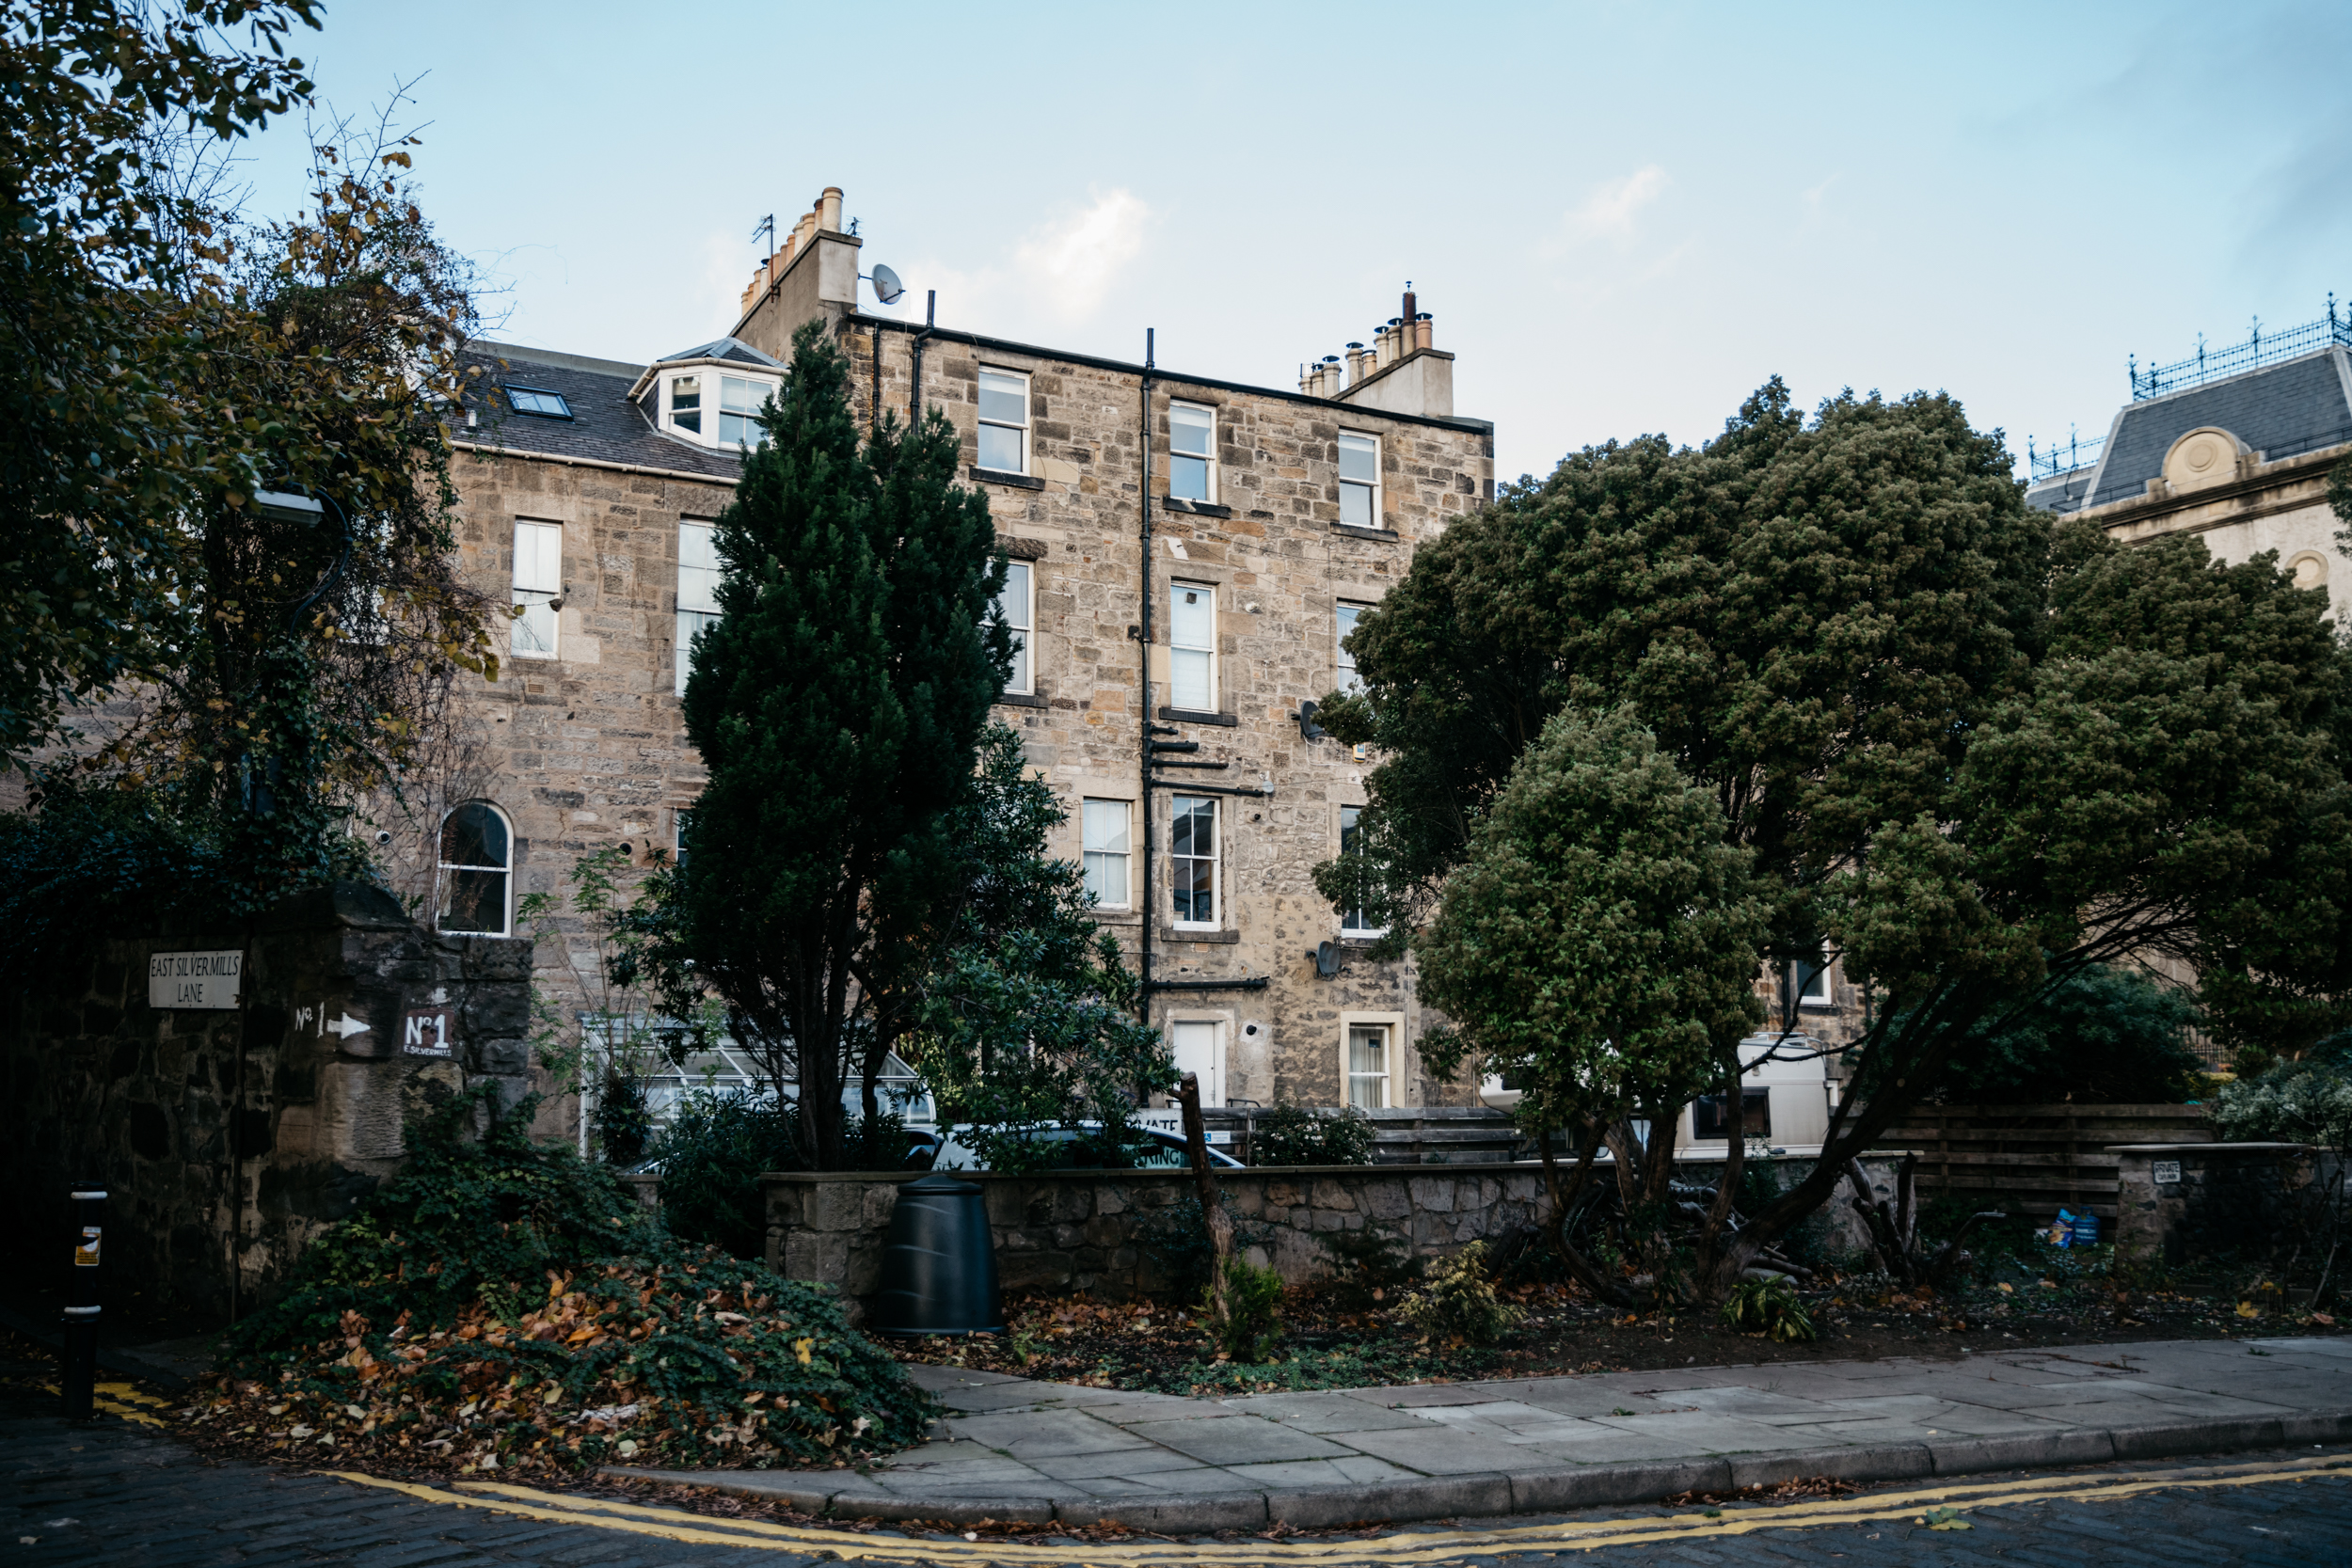 london-edinburgh-1060.jpg